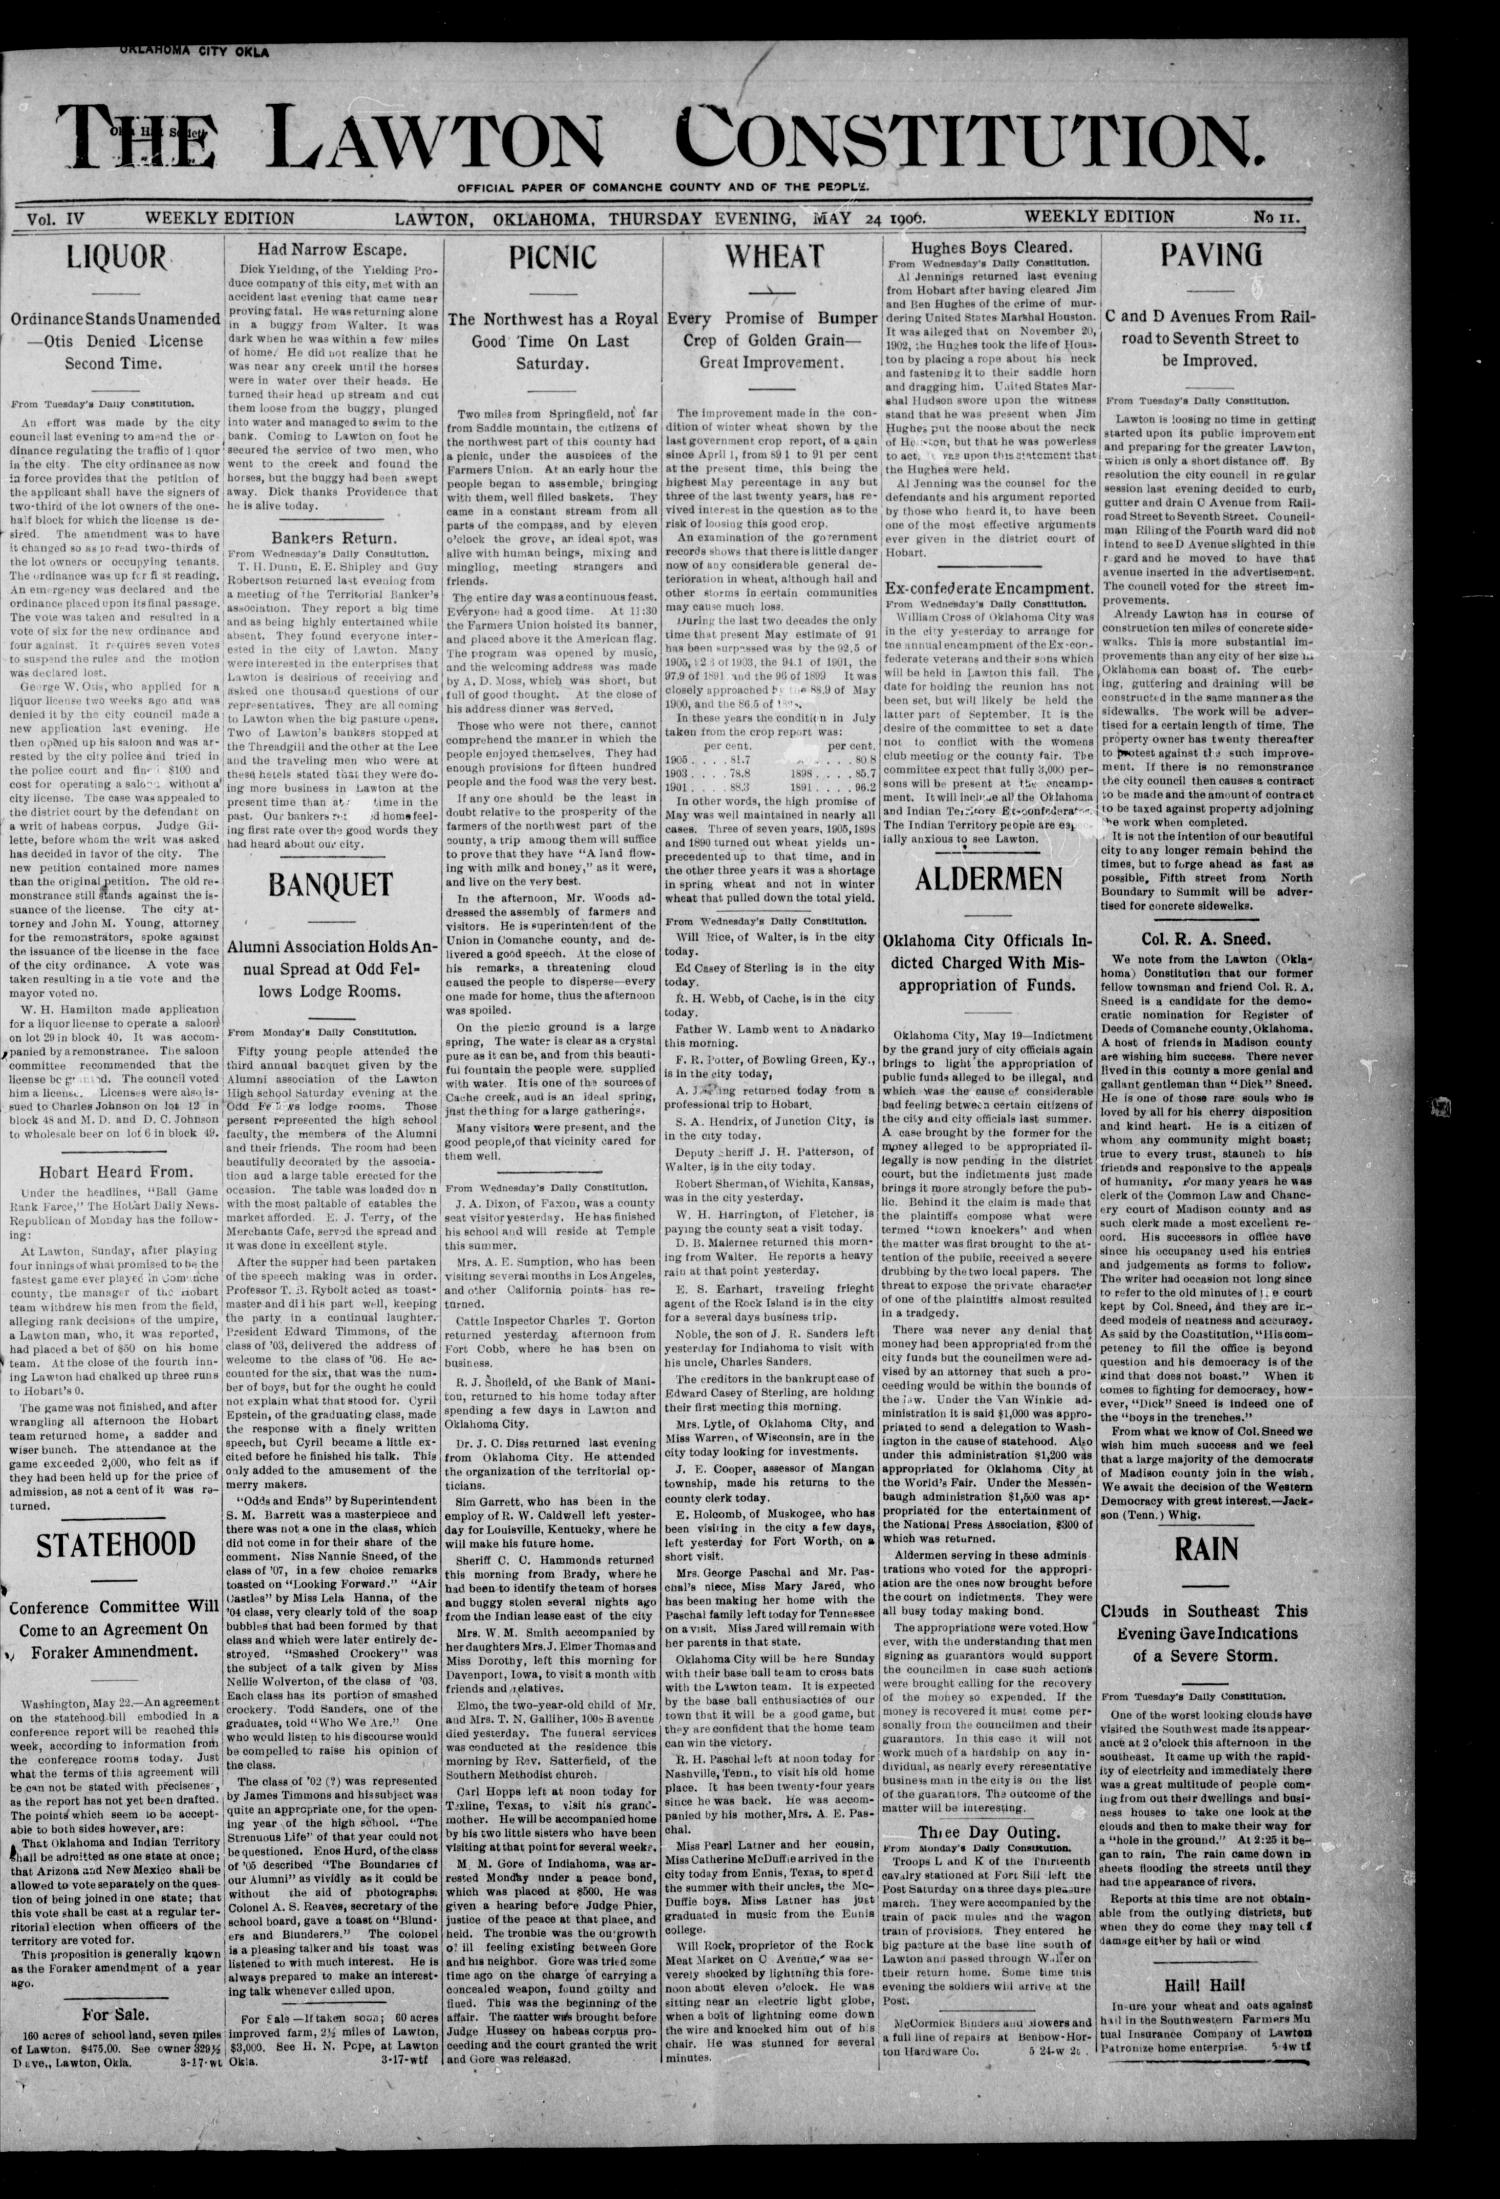 The Lawton Constitution. (Lawton, Okla.), Vol. 4, No. 12, Ed. 1 Thursday, May 24, 1906                                                                                                      [Sequence #]: 1 of 8